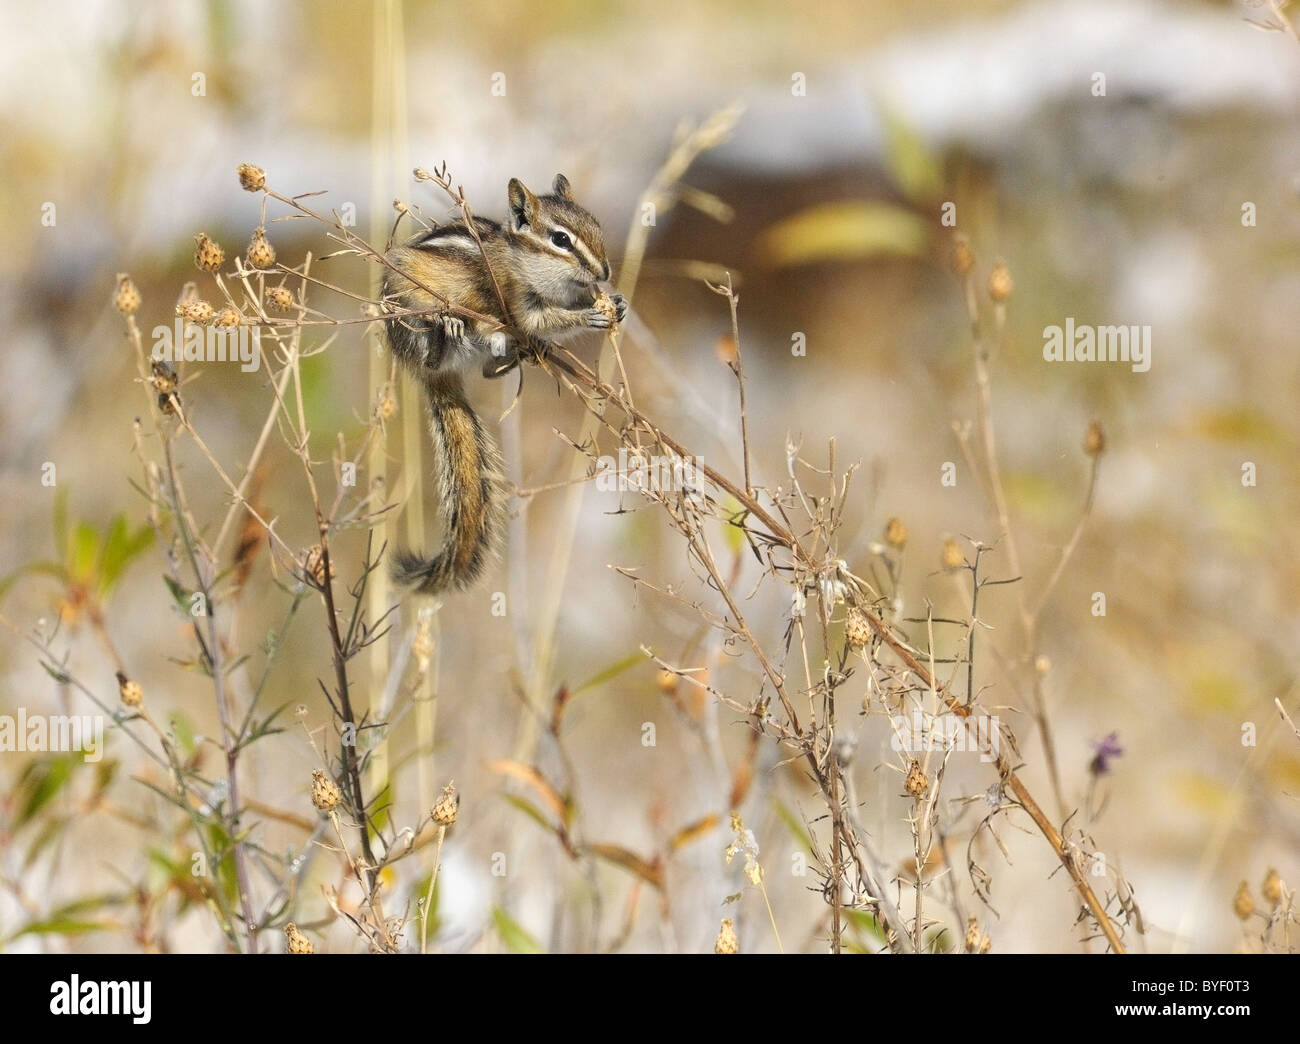 Least Chipmunk feeding on seeds in low bushes. - Stock Image